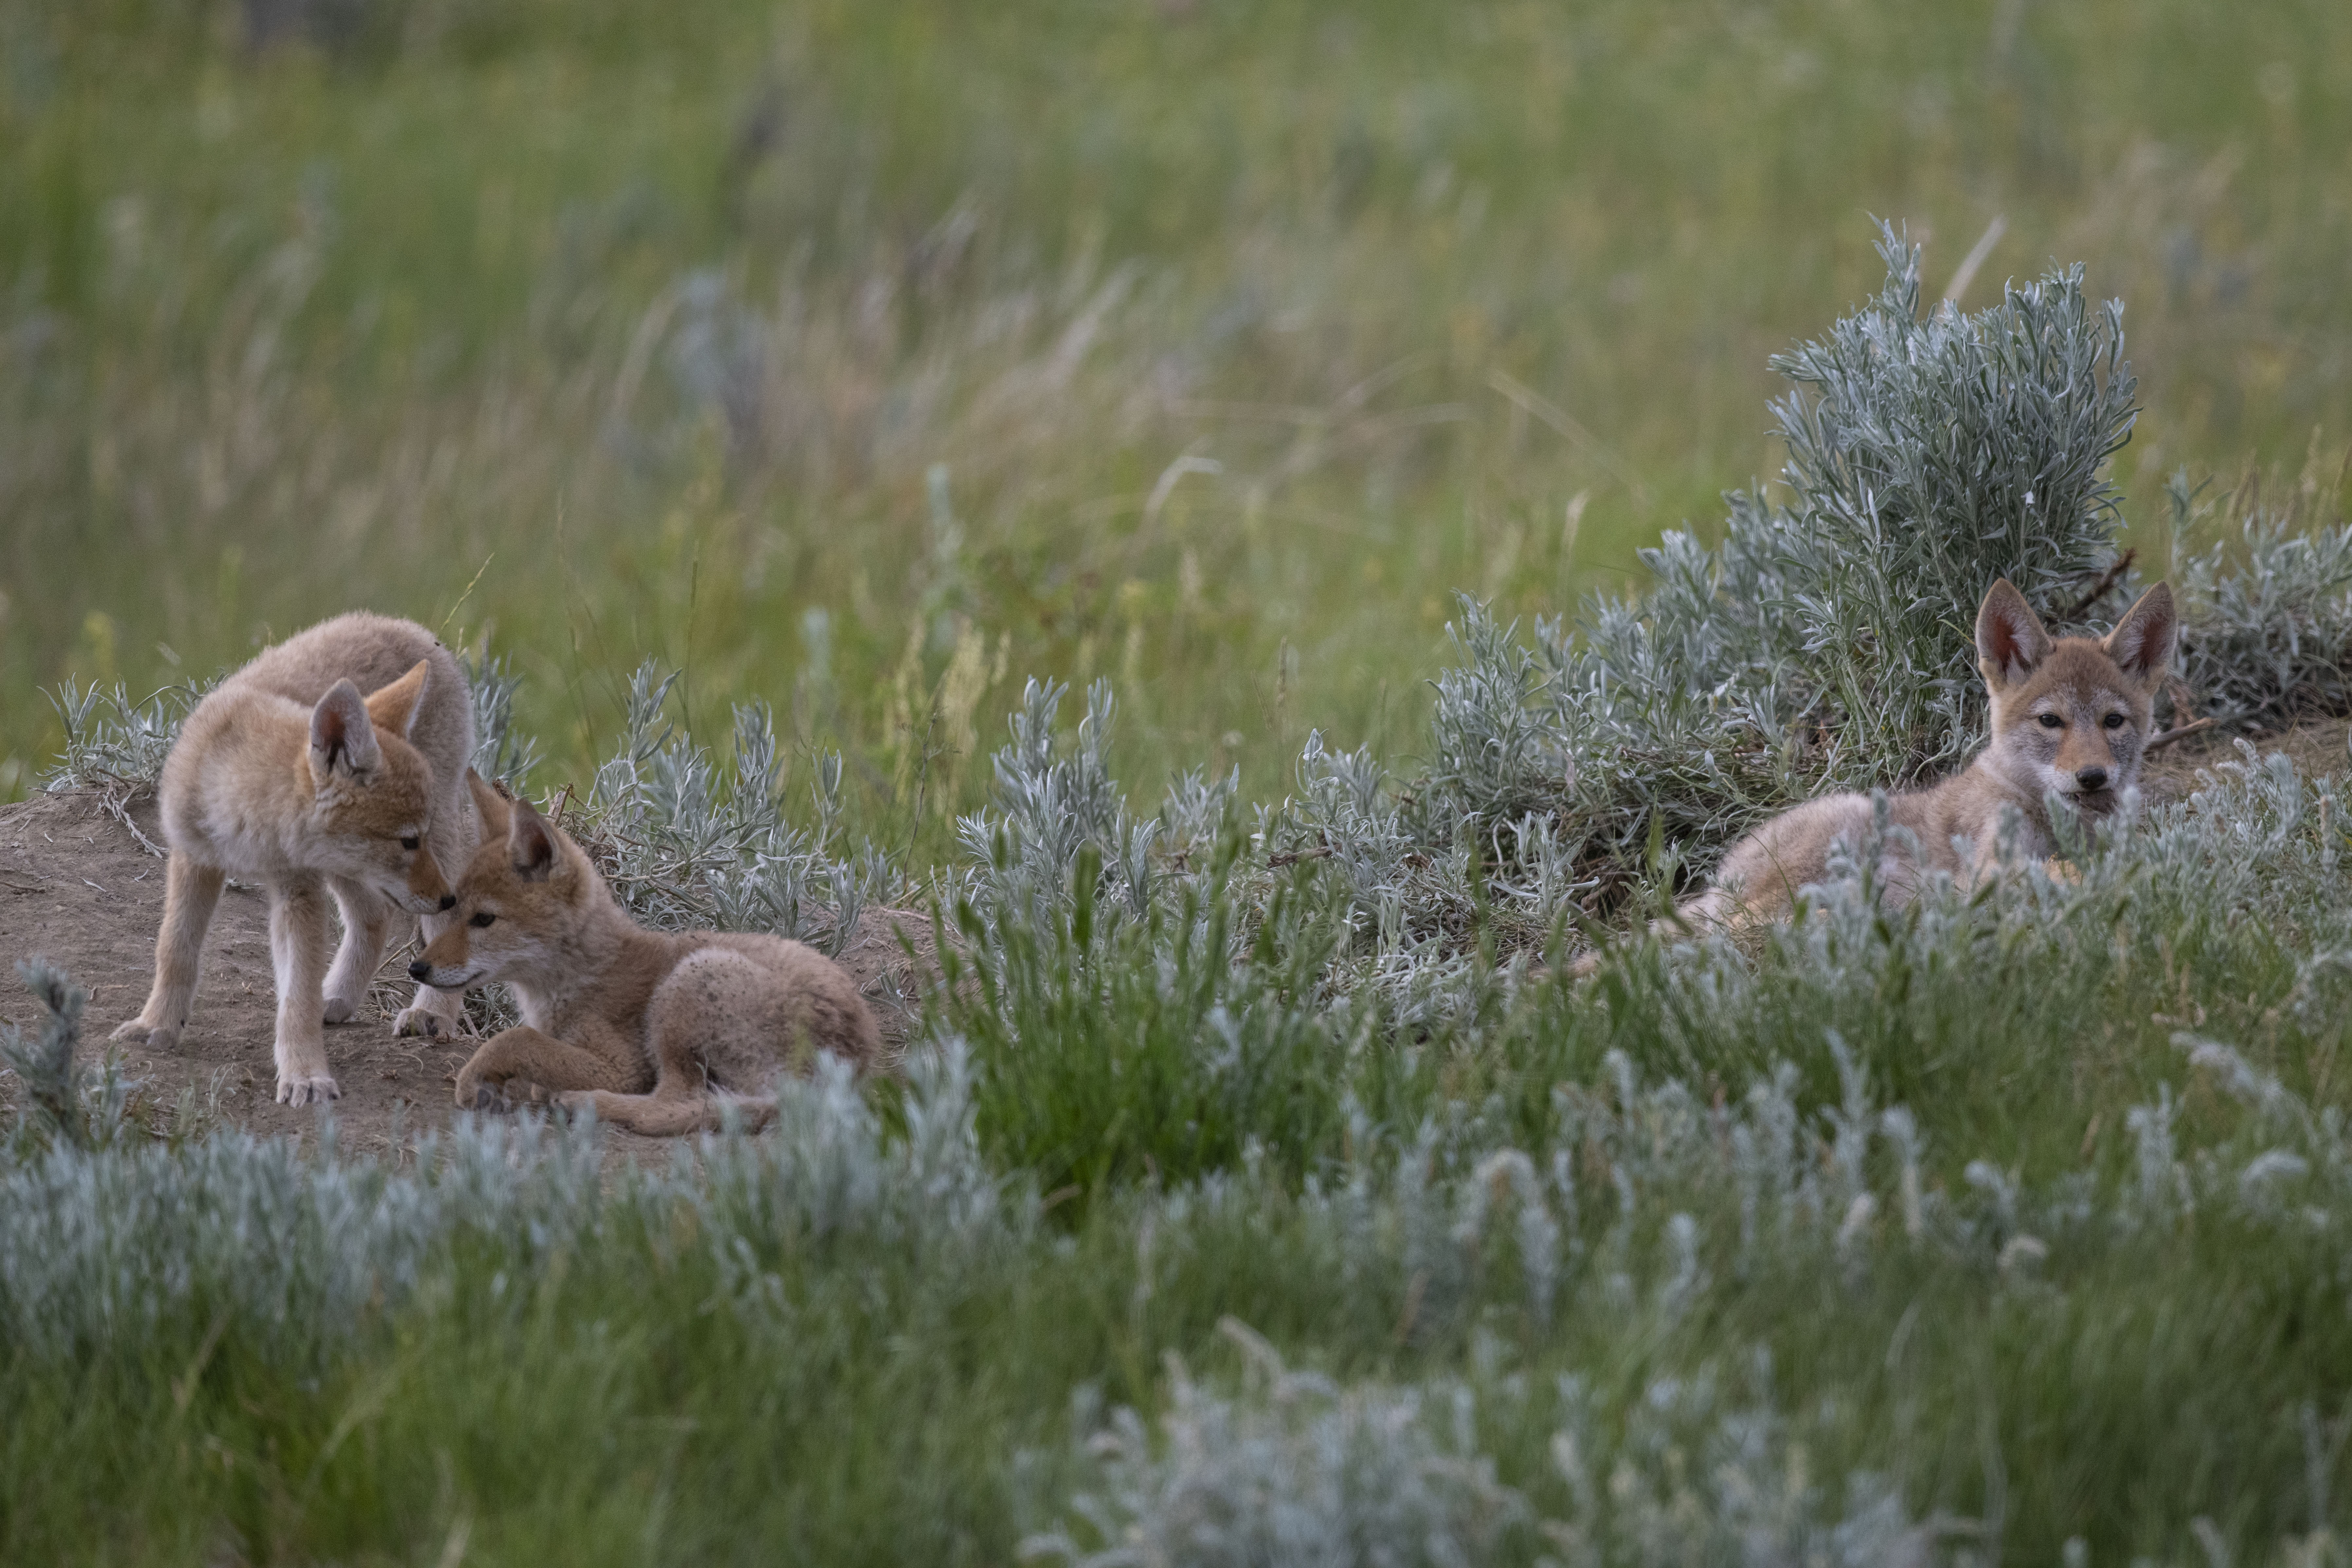 Coyote pups play in the grass